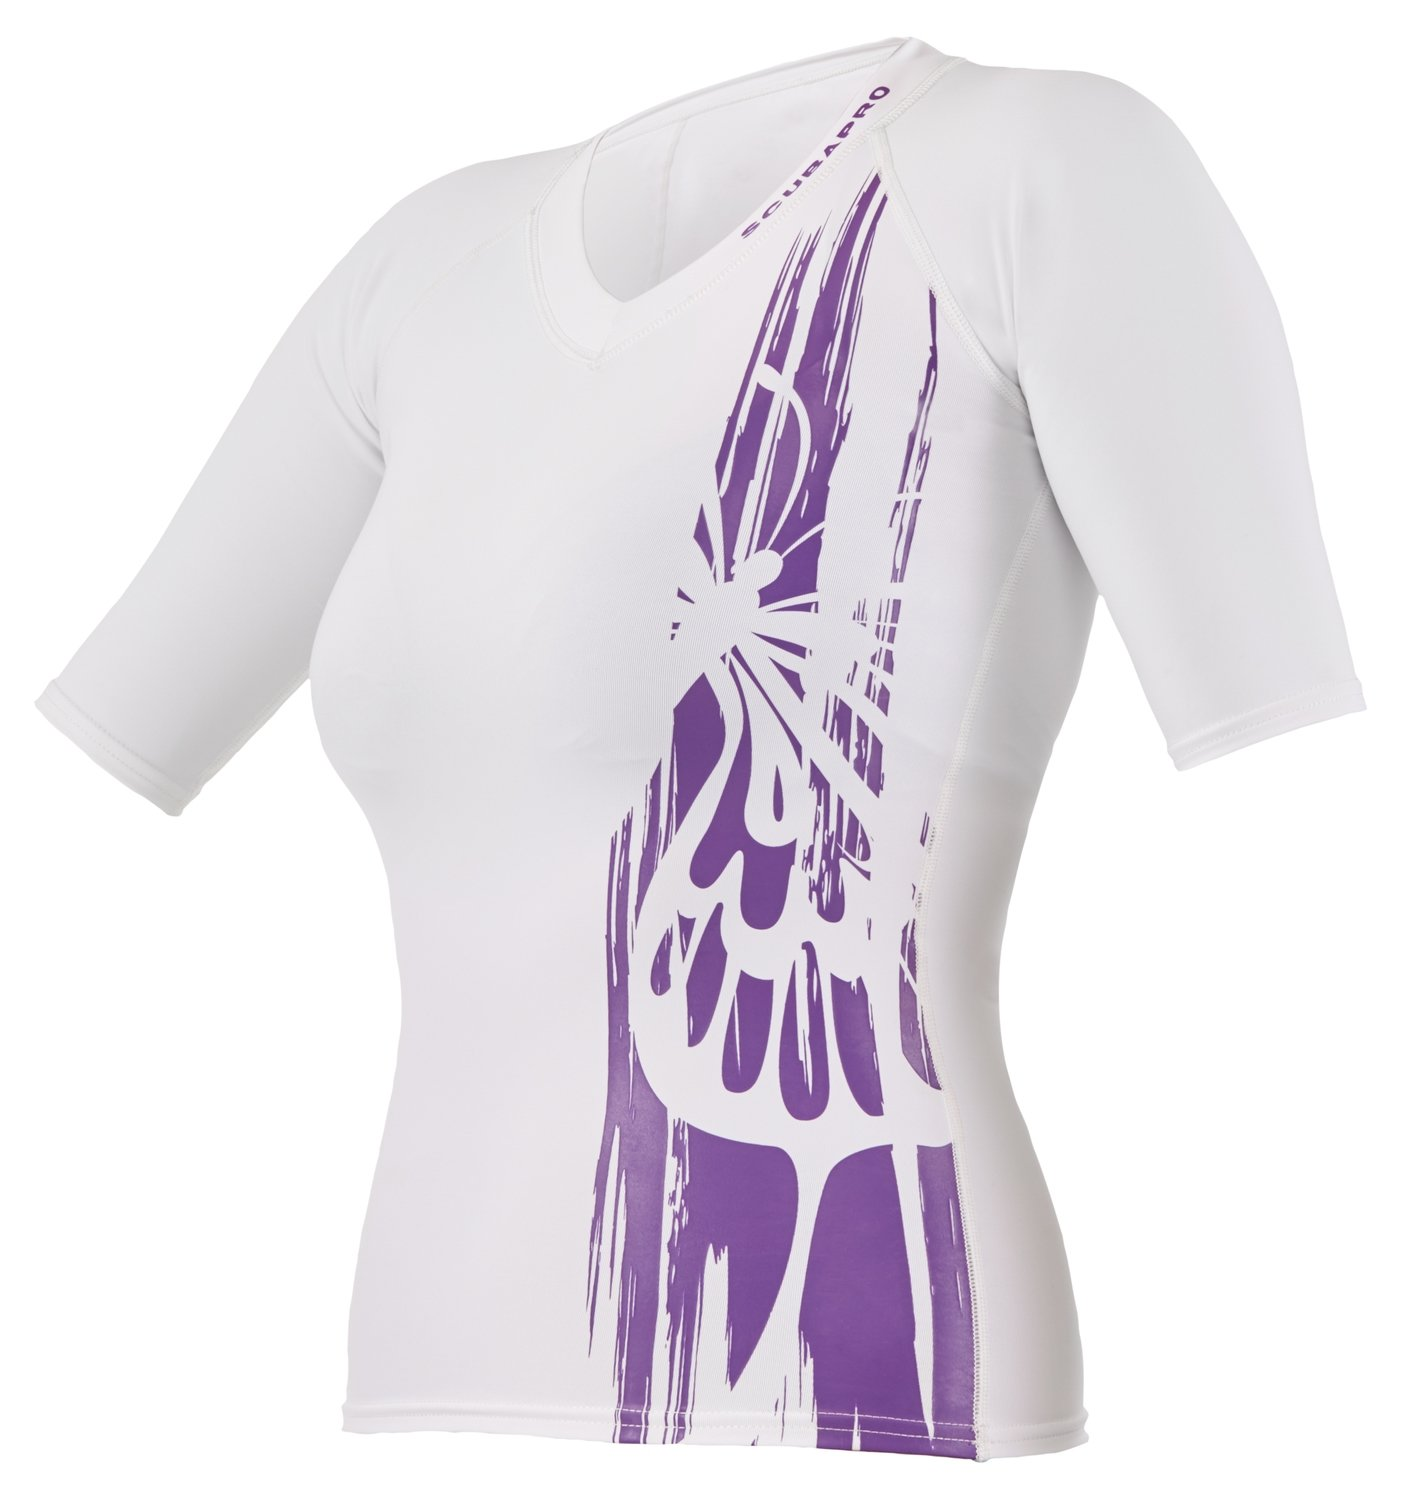 Mermaid Rash Guard for Women